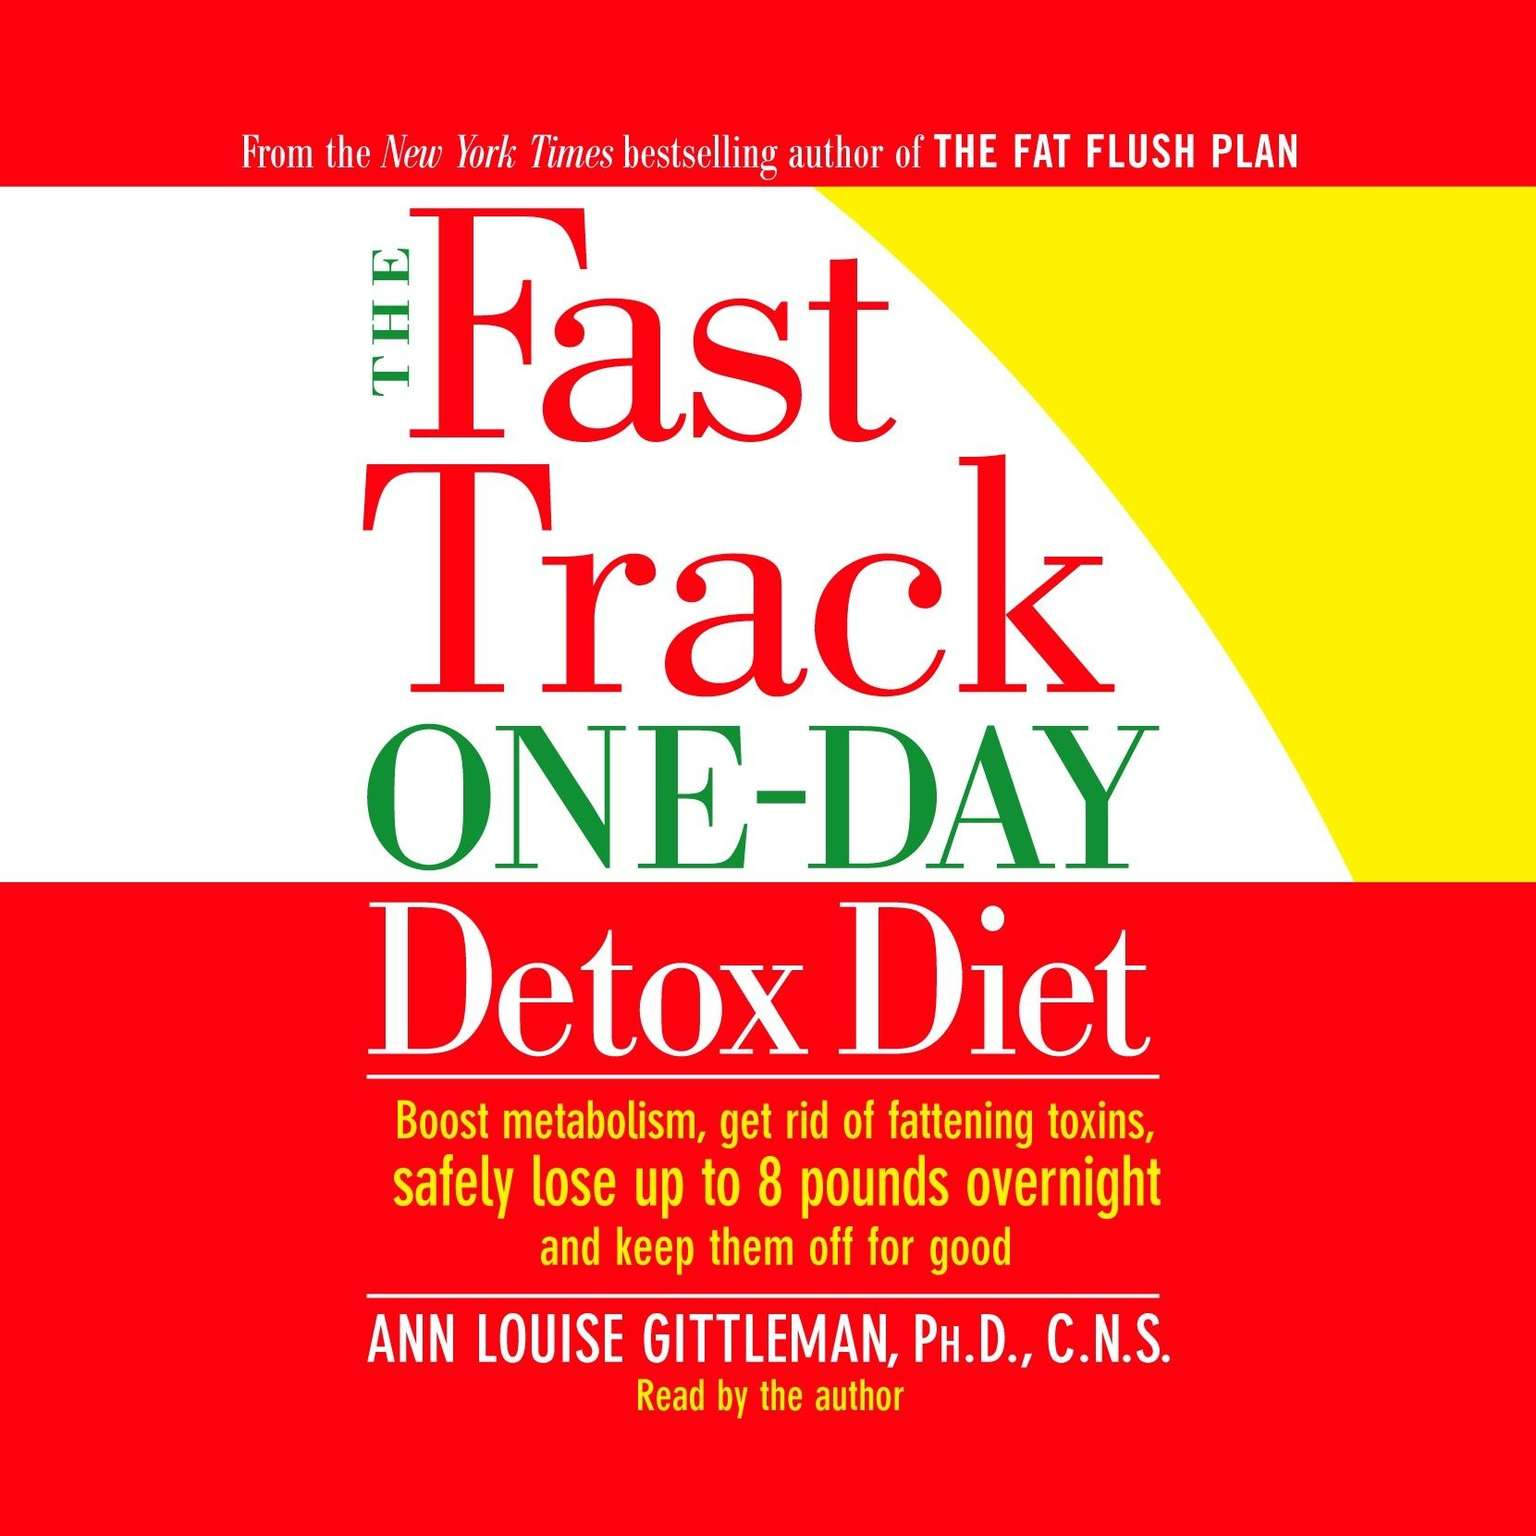 Printable The Fast Track One-Day Detox Diet: Boost metabolism, get rid of fattening toxins, lose up to 8 pounds overnight and keep it off for good Audiobook Cover Art